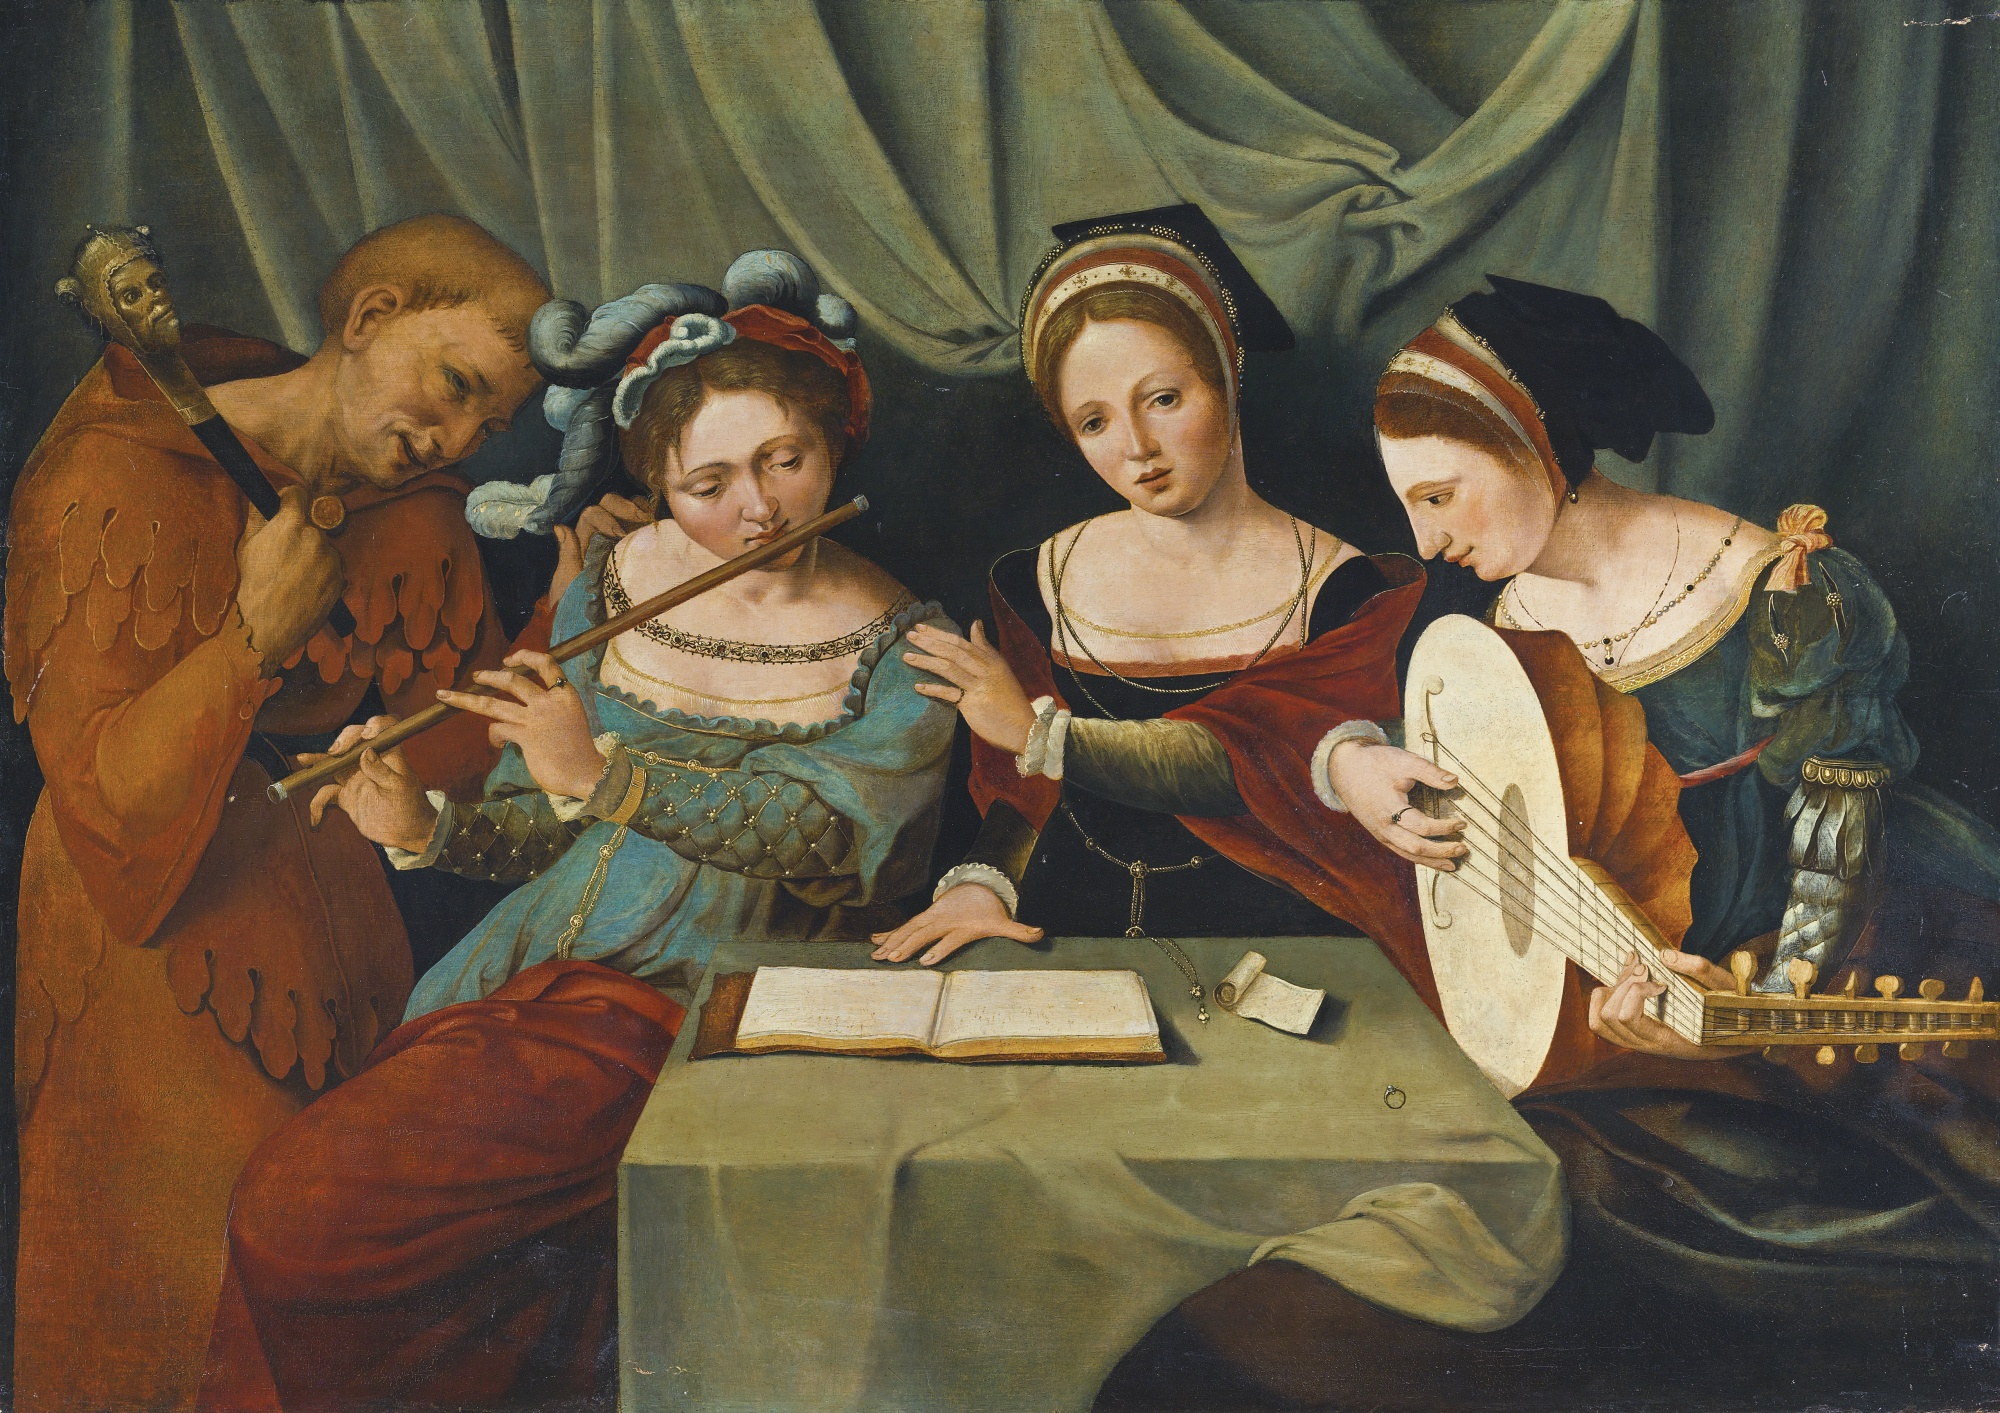 a history of the renaissance music This course explores the development of western european music from the antiquity and middle ages through the renaissance and baroque periods by focusing on major.